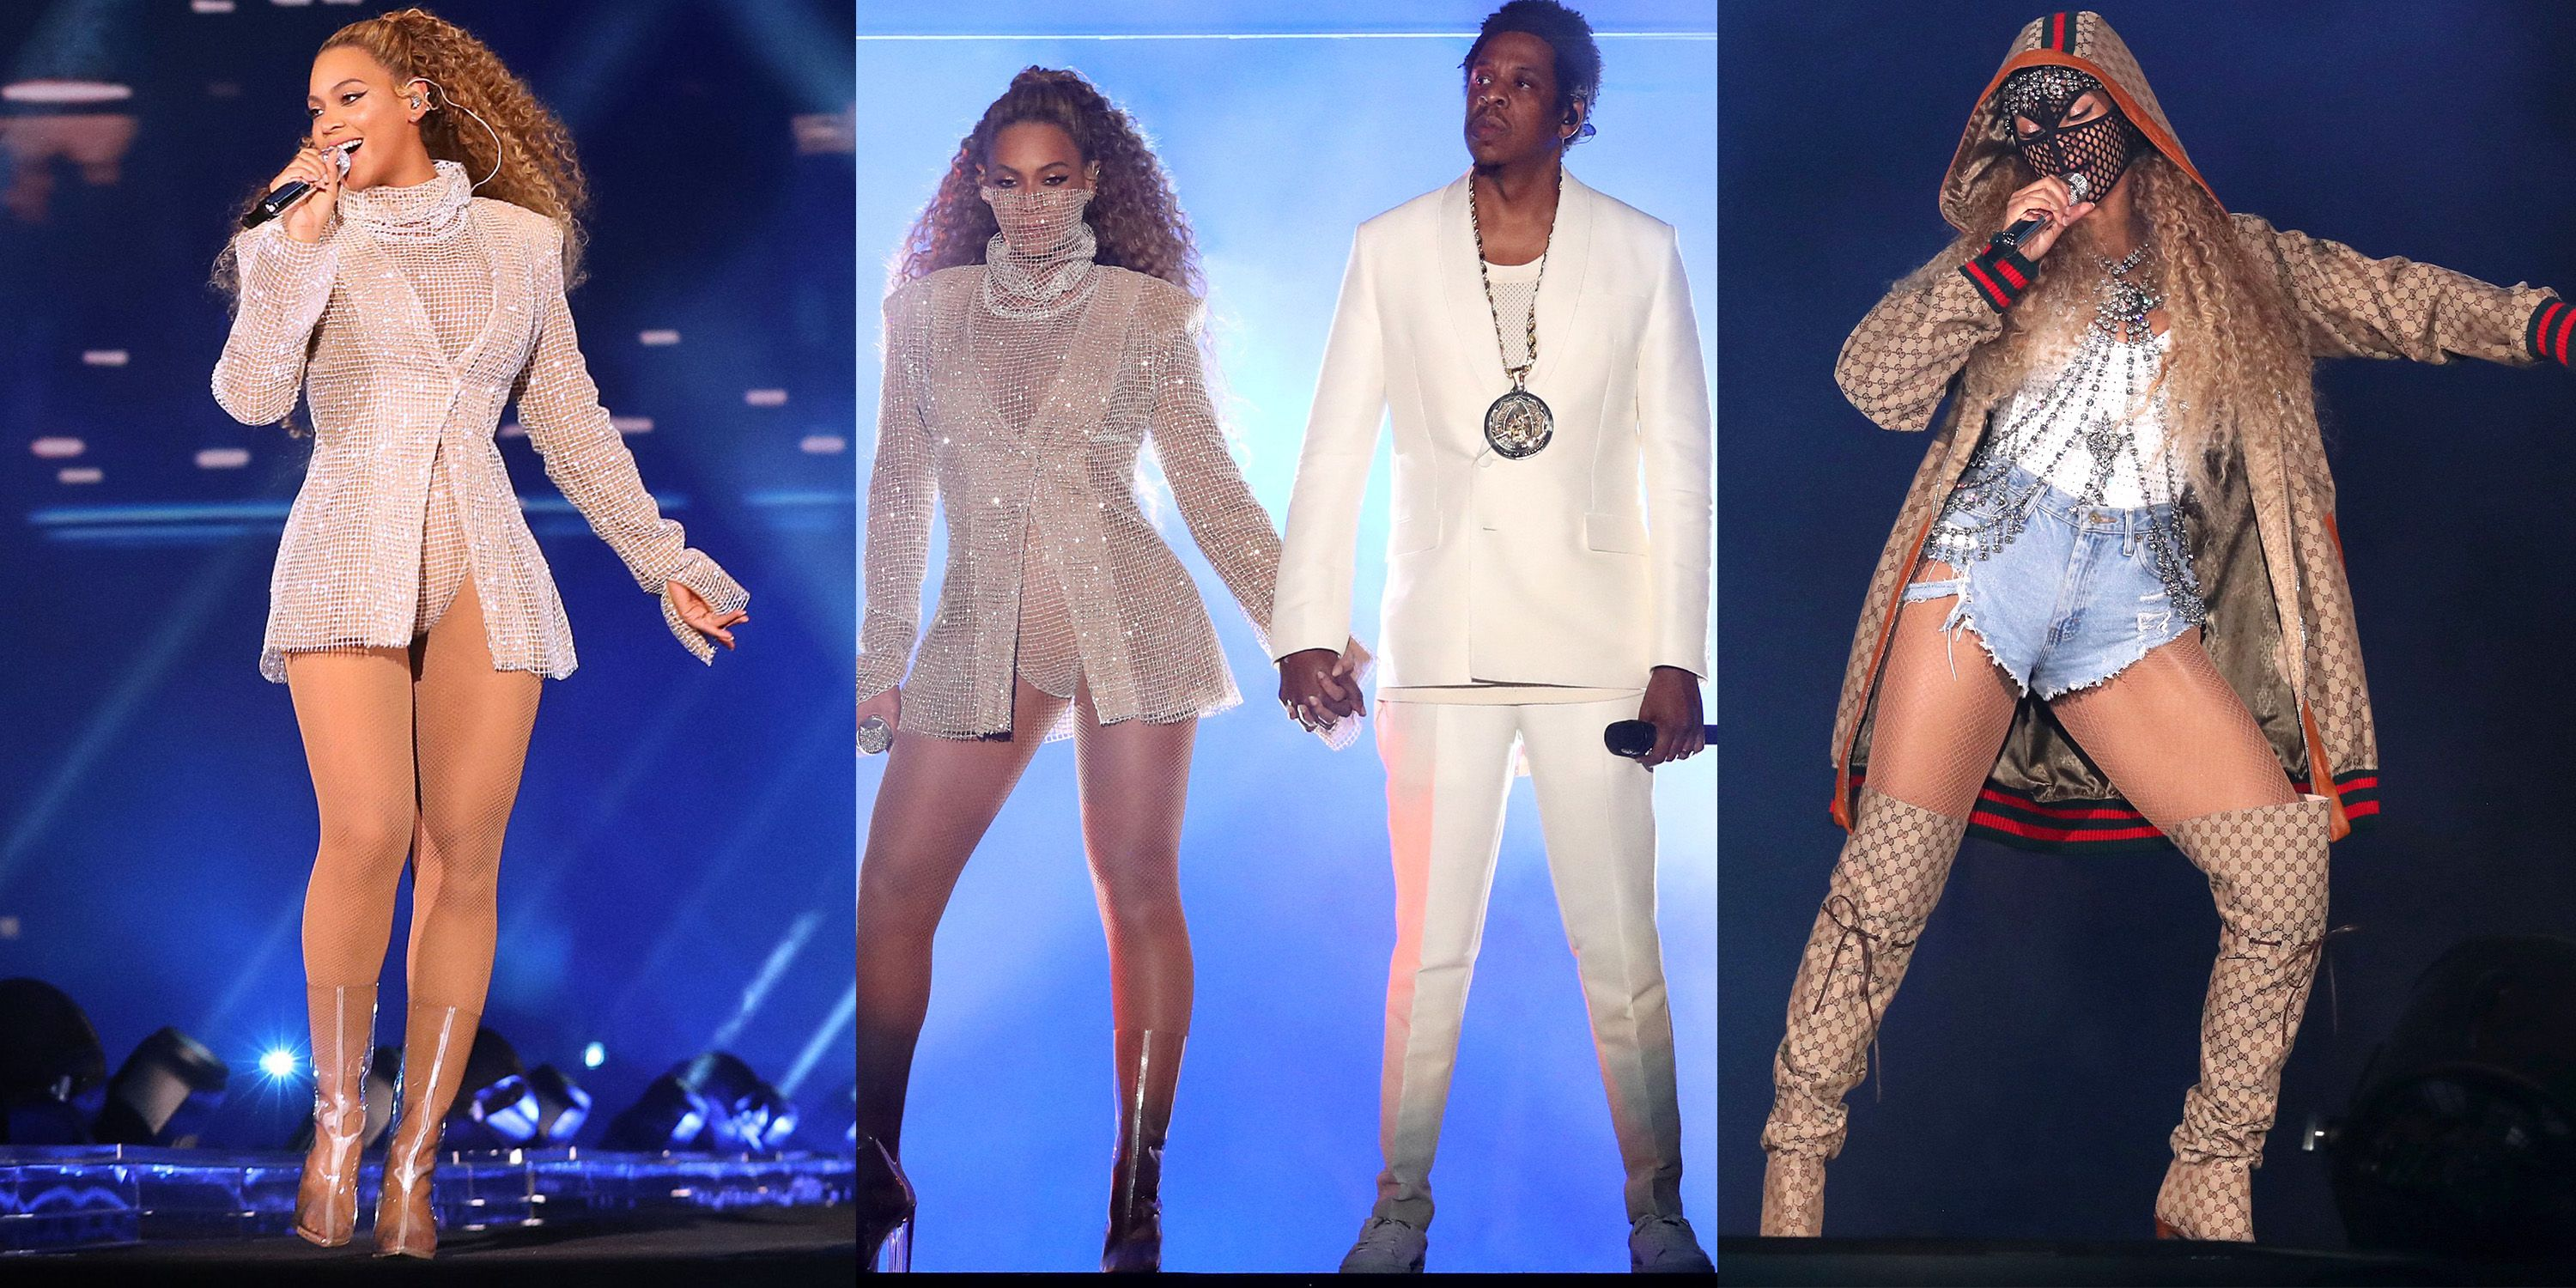 cac609c8f081 Beyoncé On The Run Tour II Outfits - Beyonce Concert Costumes On The ...